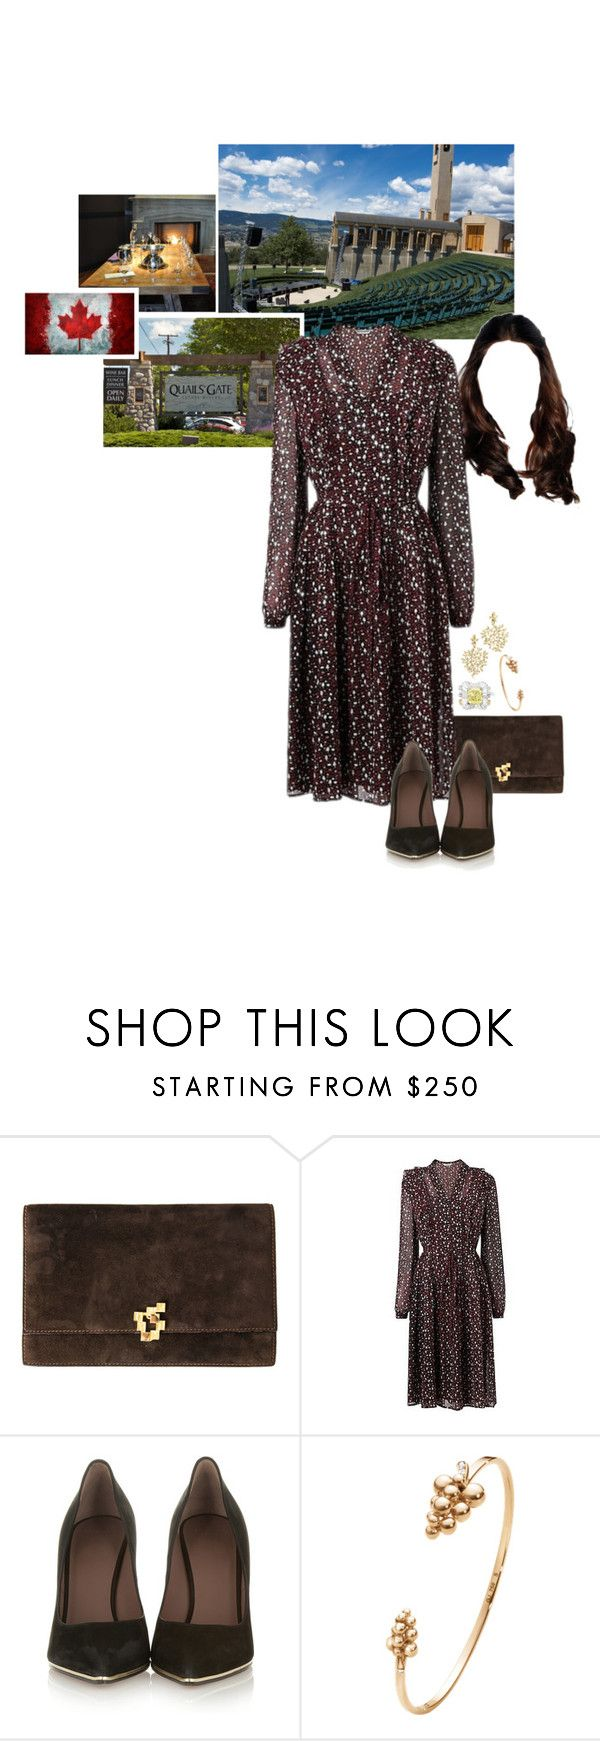 """""""Untitled #2205"""" by duchessq ❤ liked on Polyvore featuring Columbia, Givenchy and Paloma Picasso"""